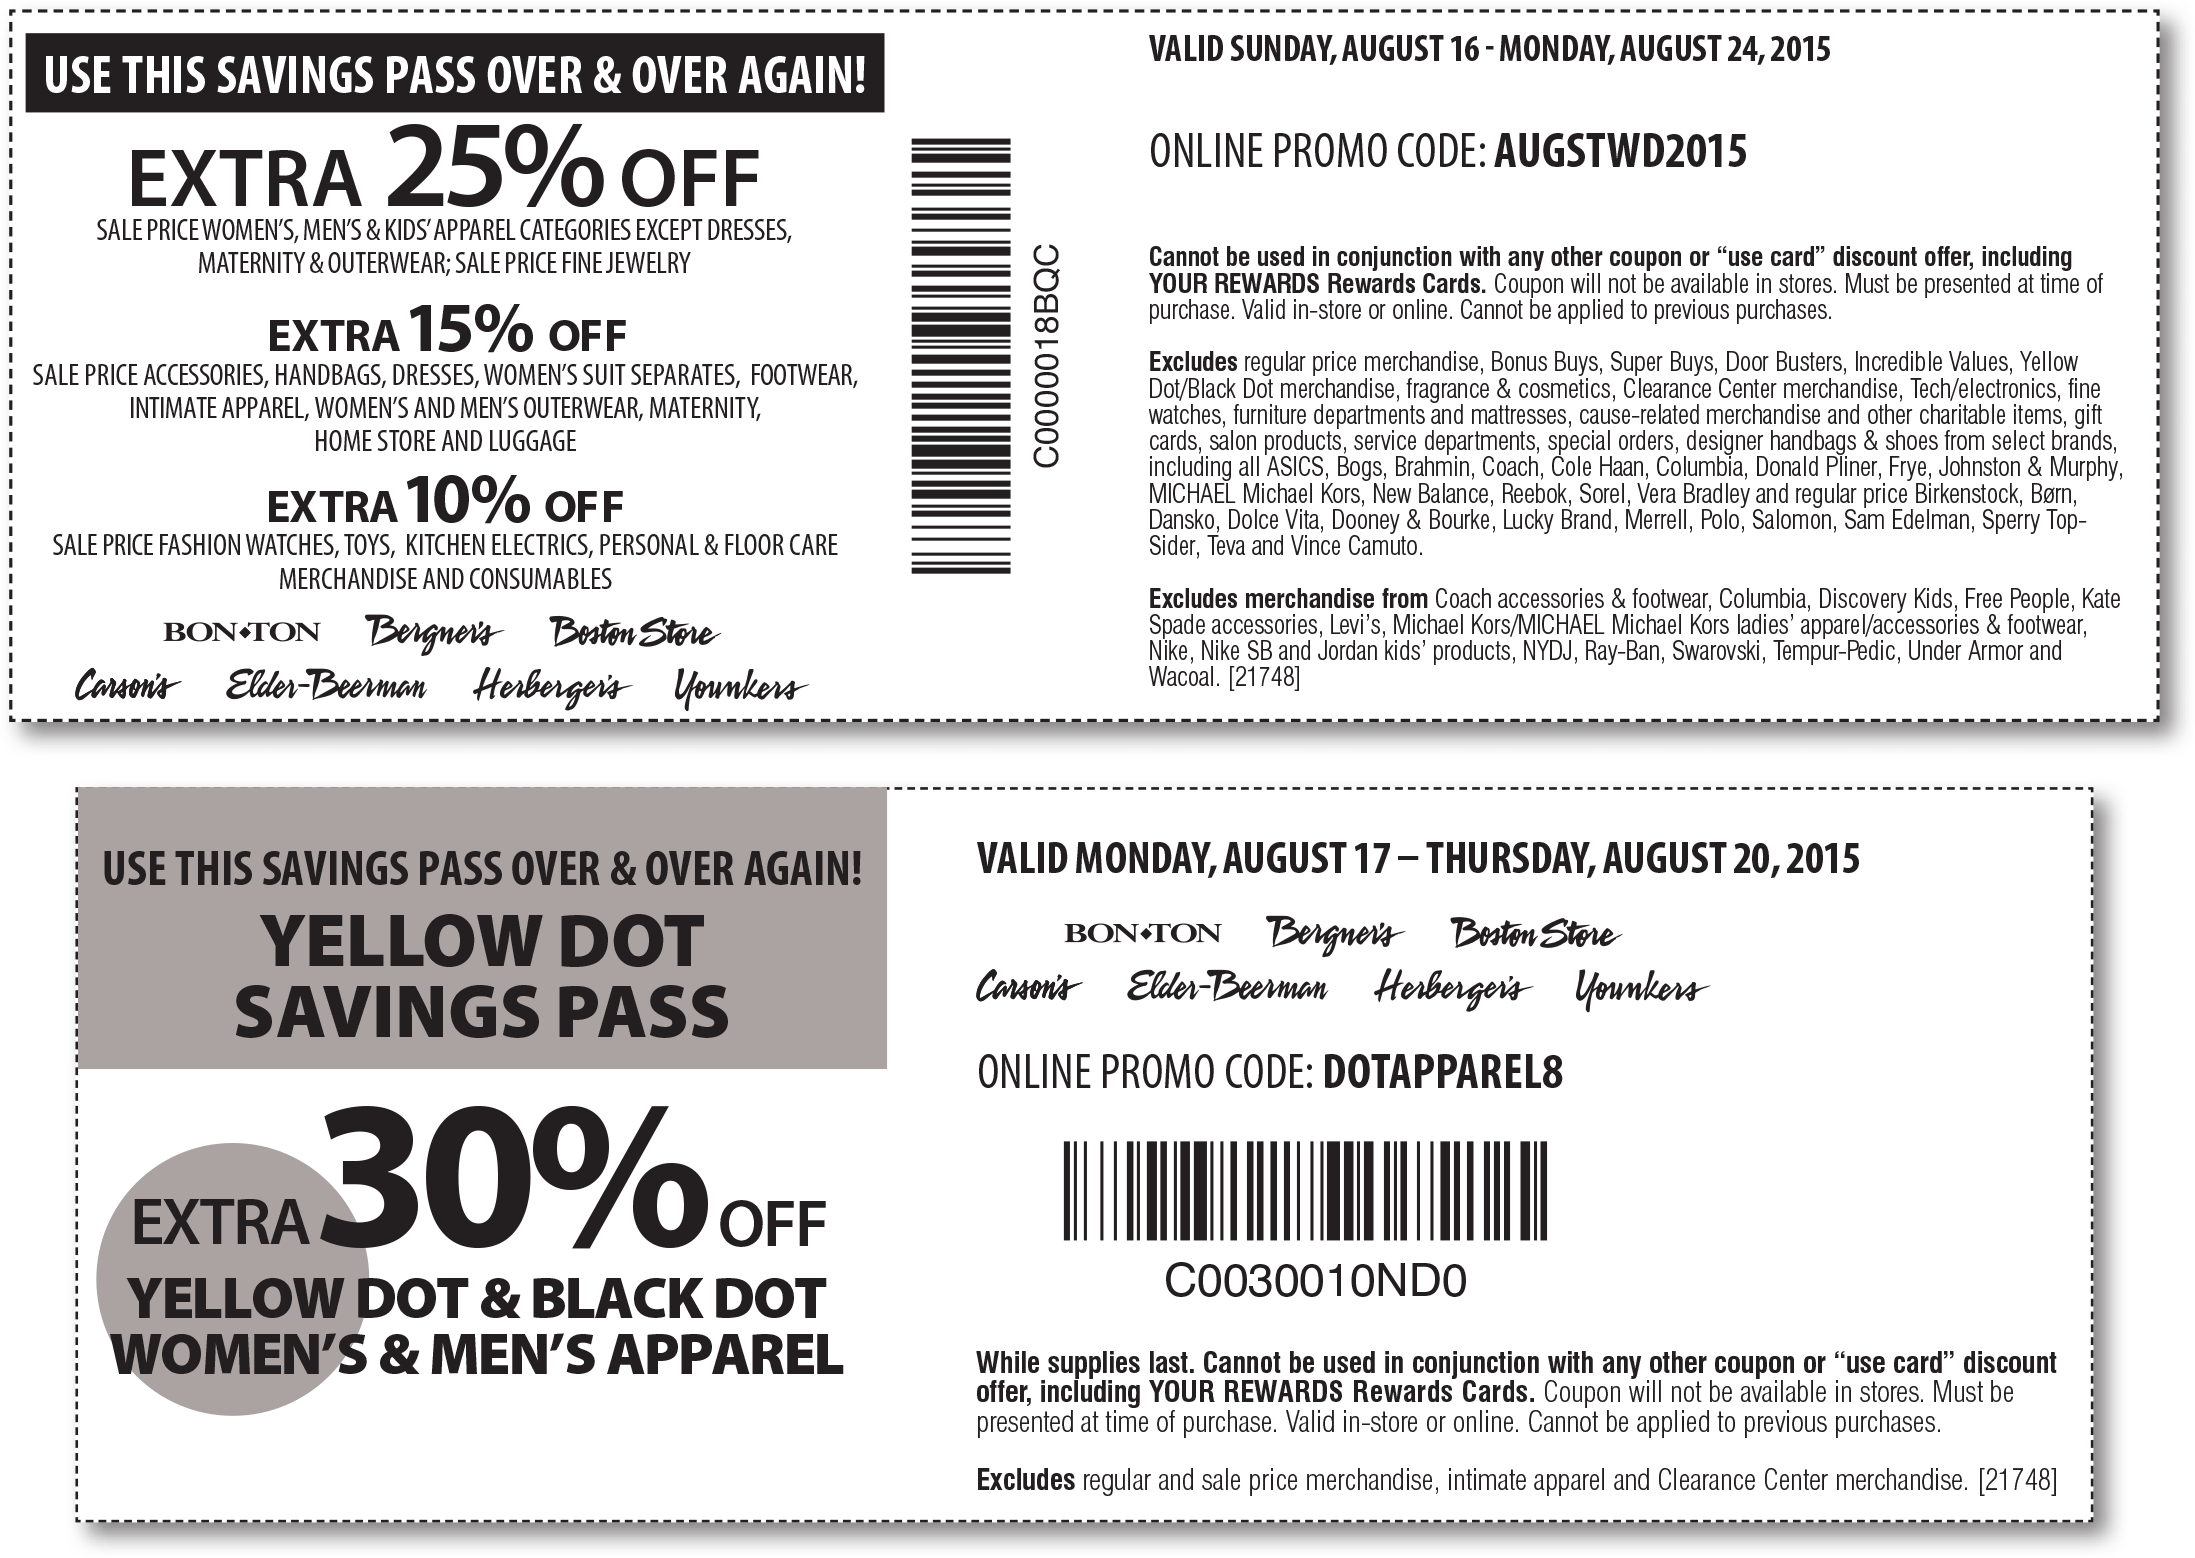 Carsons Coupon February 2018 Extra 25% off & more at Carsons, Bon Ton & sister stores, or online via promo code AUGSTWD2015